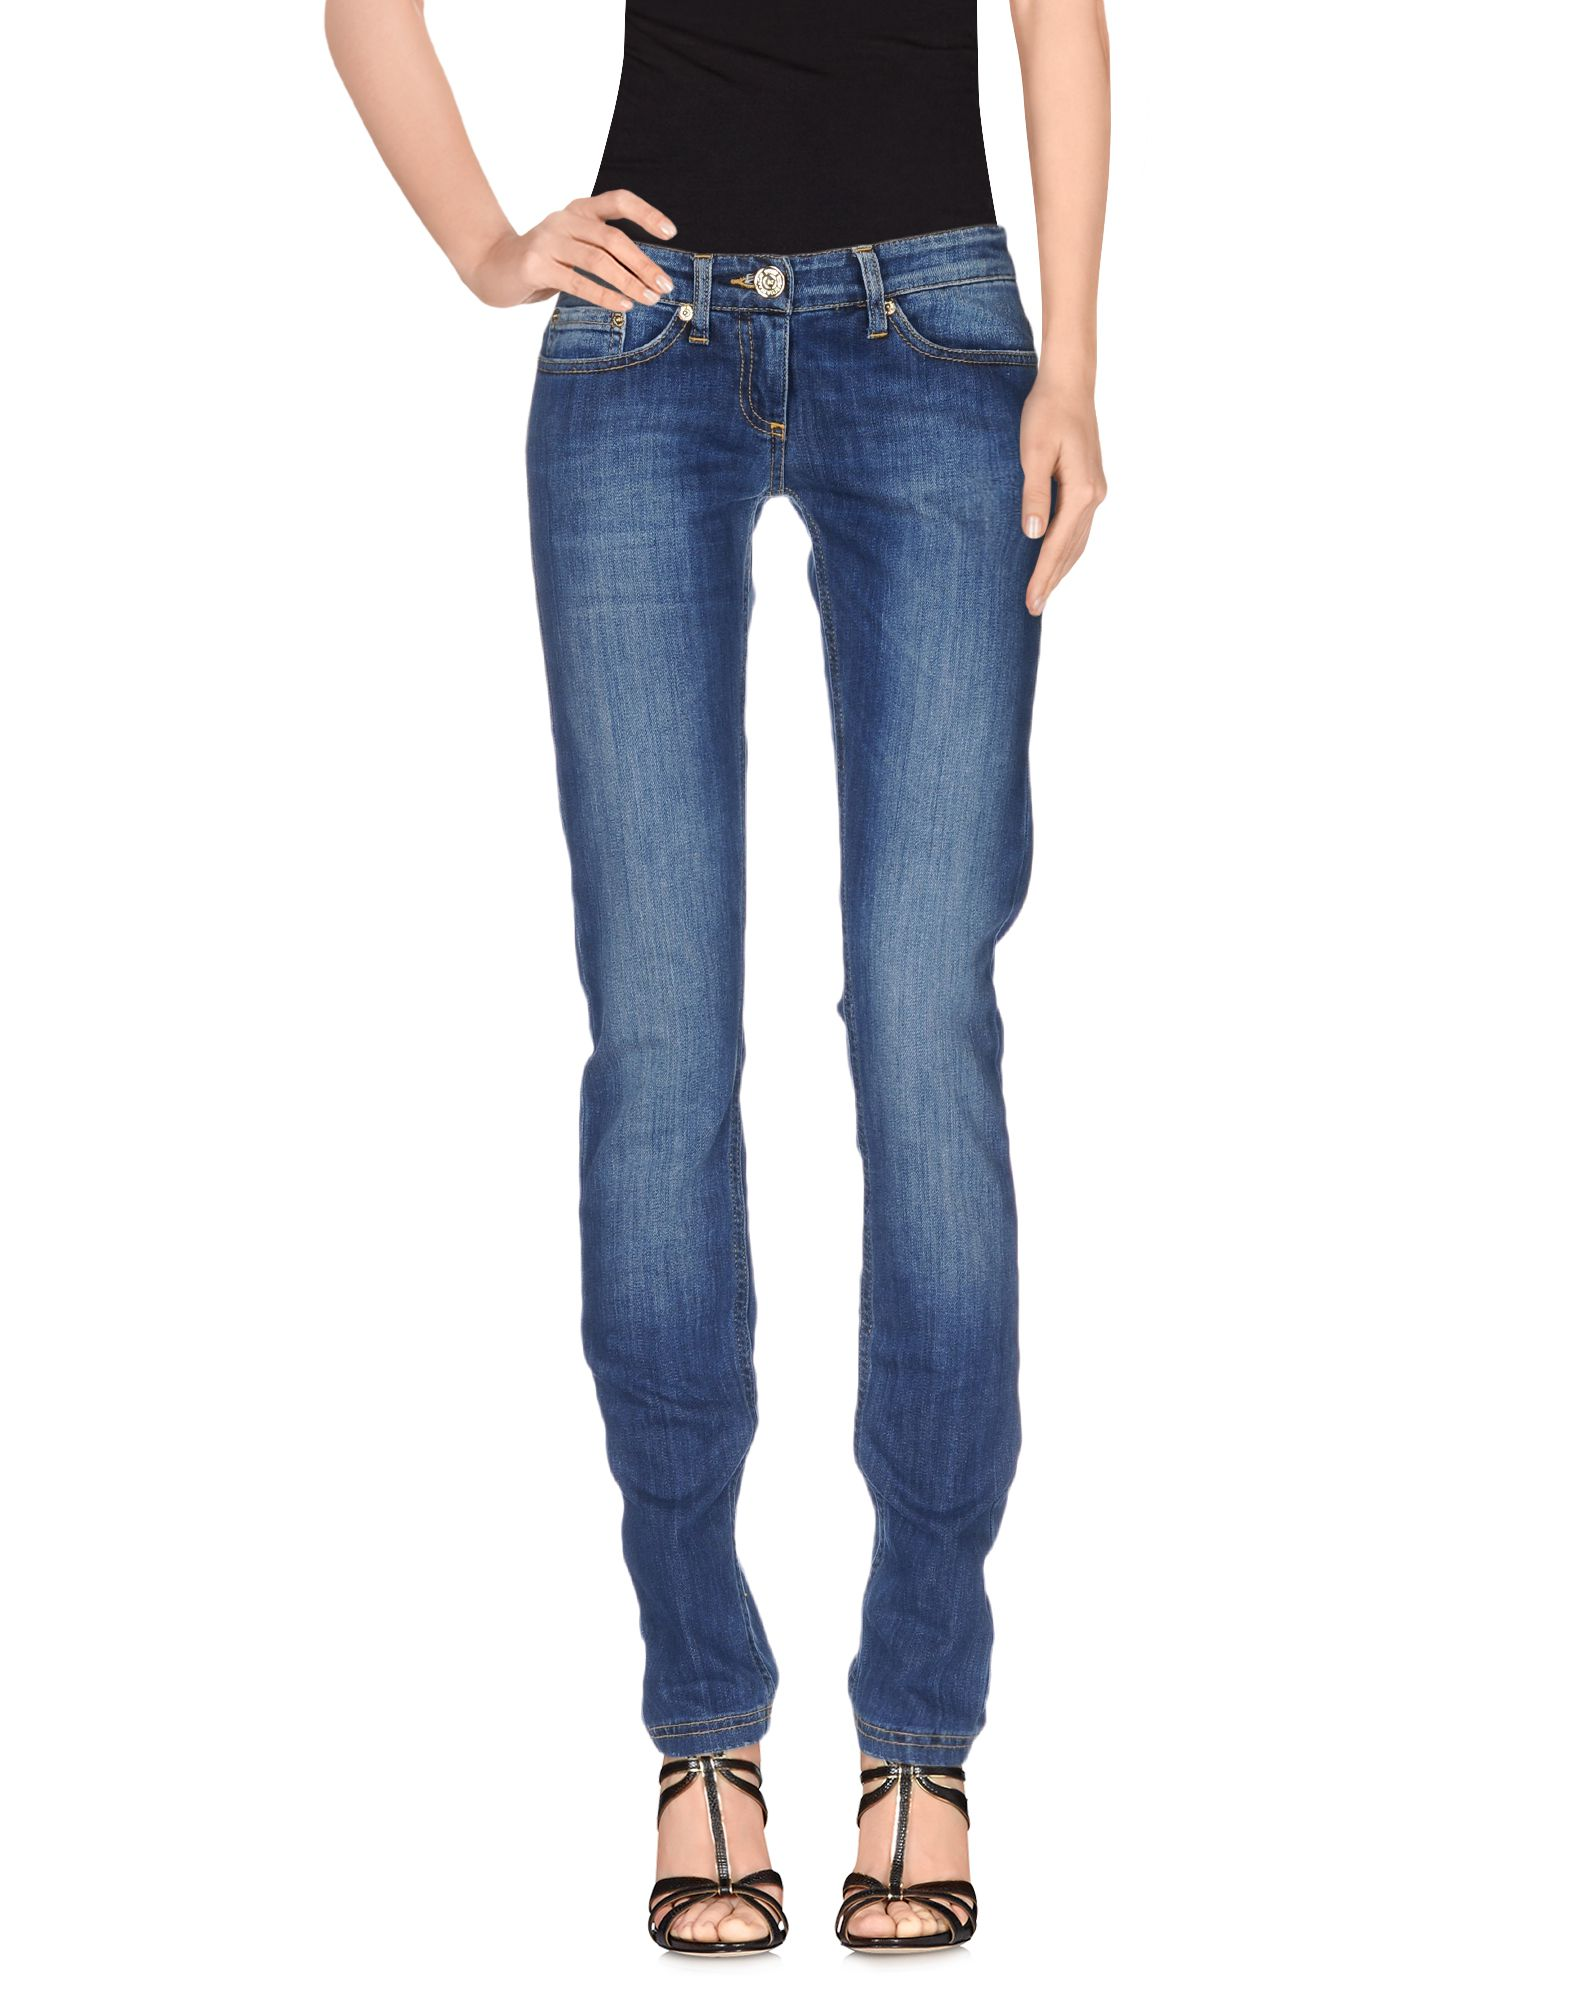 ELISABETTA FRANCHI JEANS for CELYN B. Джинсовые брюки